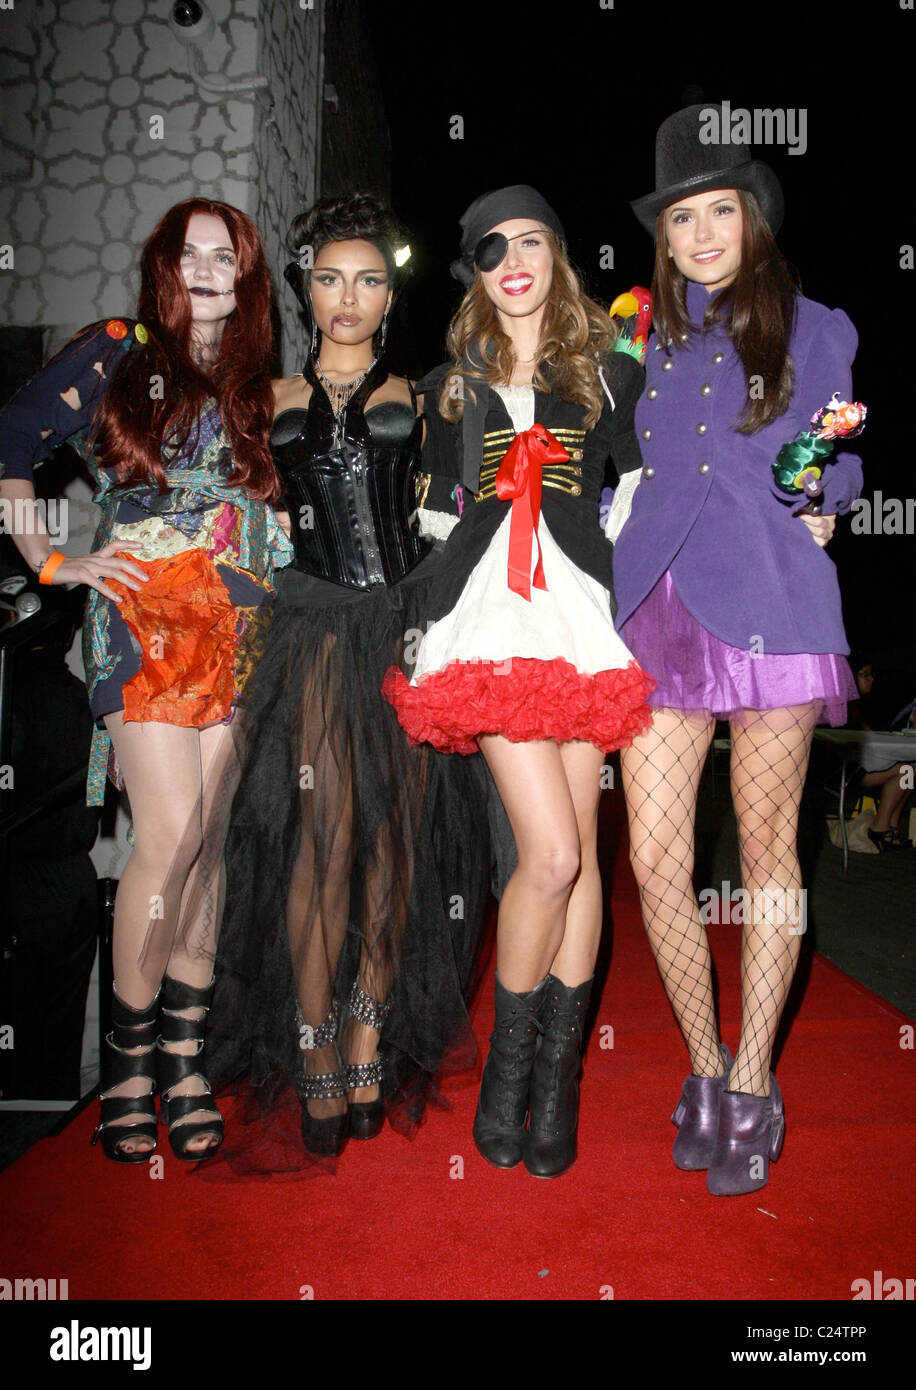 nina dobrev friends arriving at heidi klum 39 s halloween. Black Bedroom Furniture Sets. Home Design Ideas